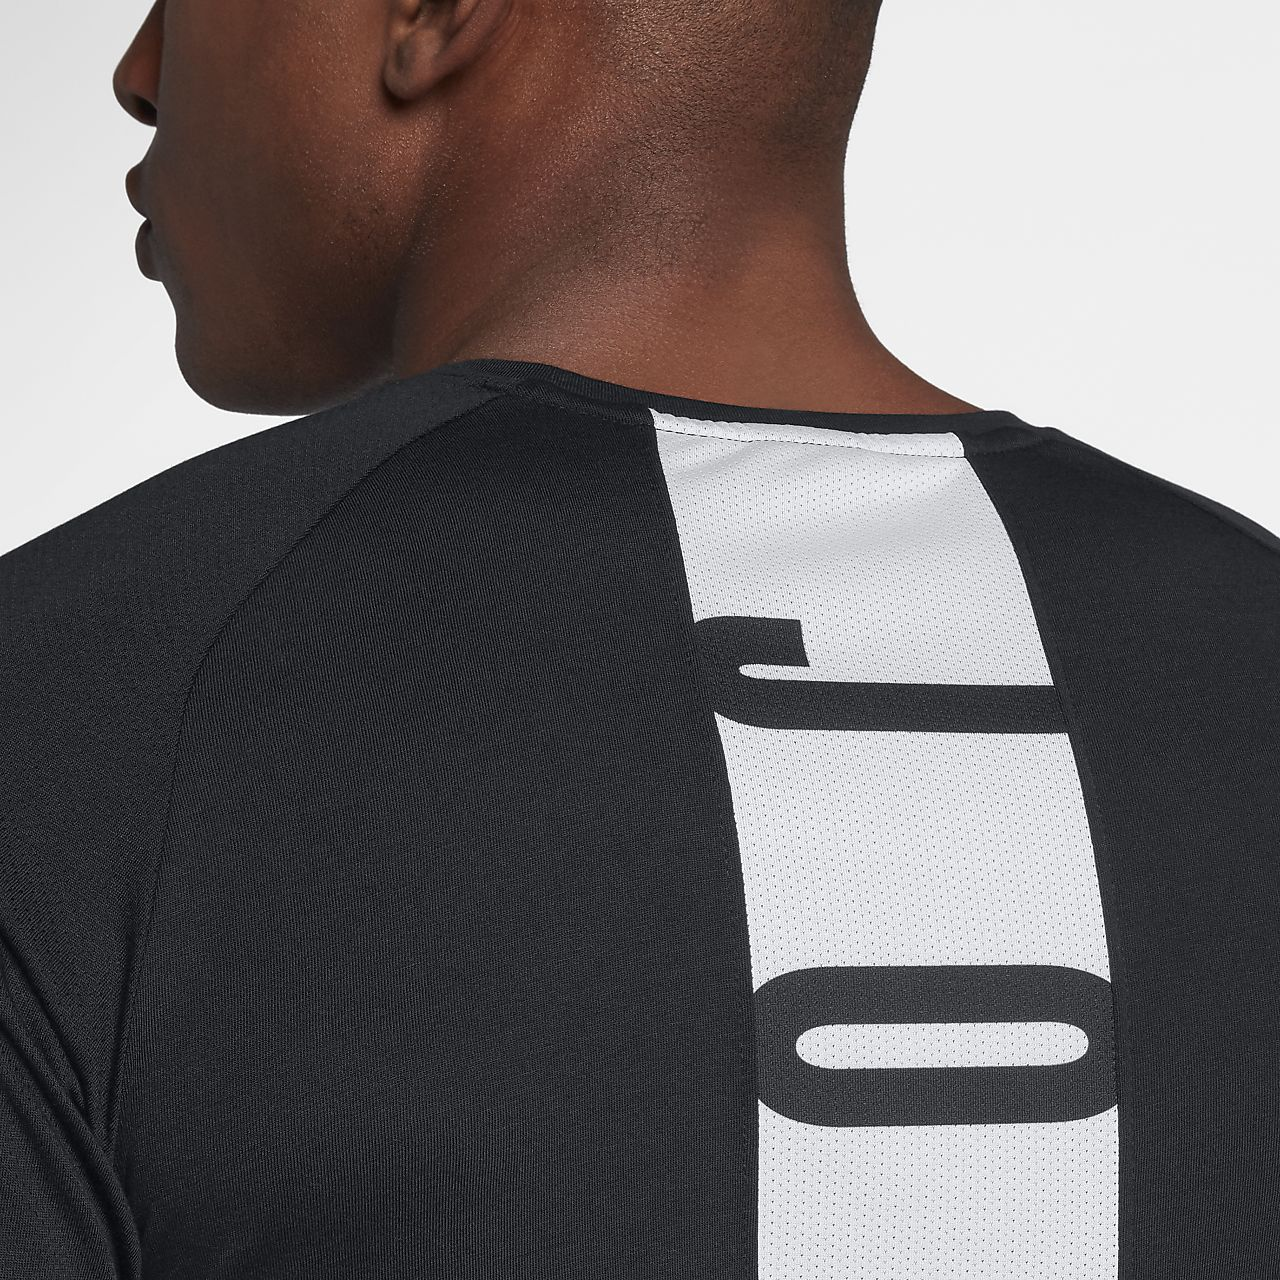 d0b898f6 Jordan 23 Alpha Men's Short-Sleeve Training Top. Nike.com MY